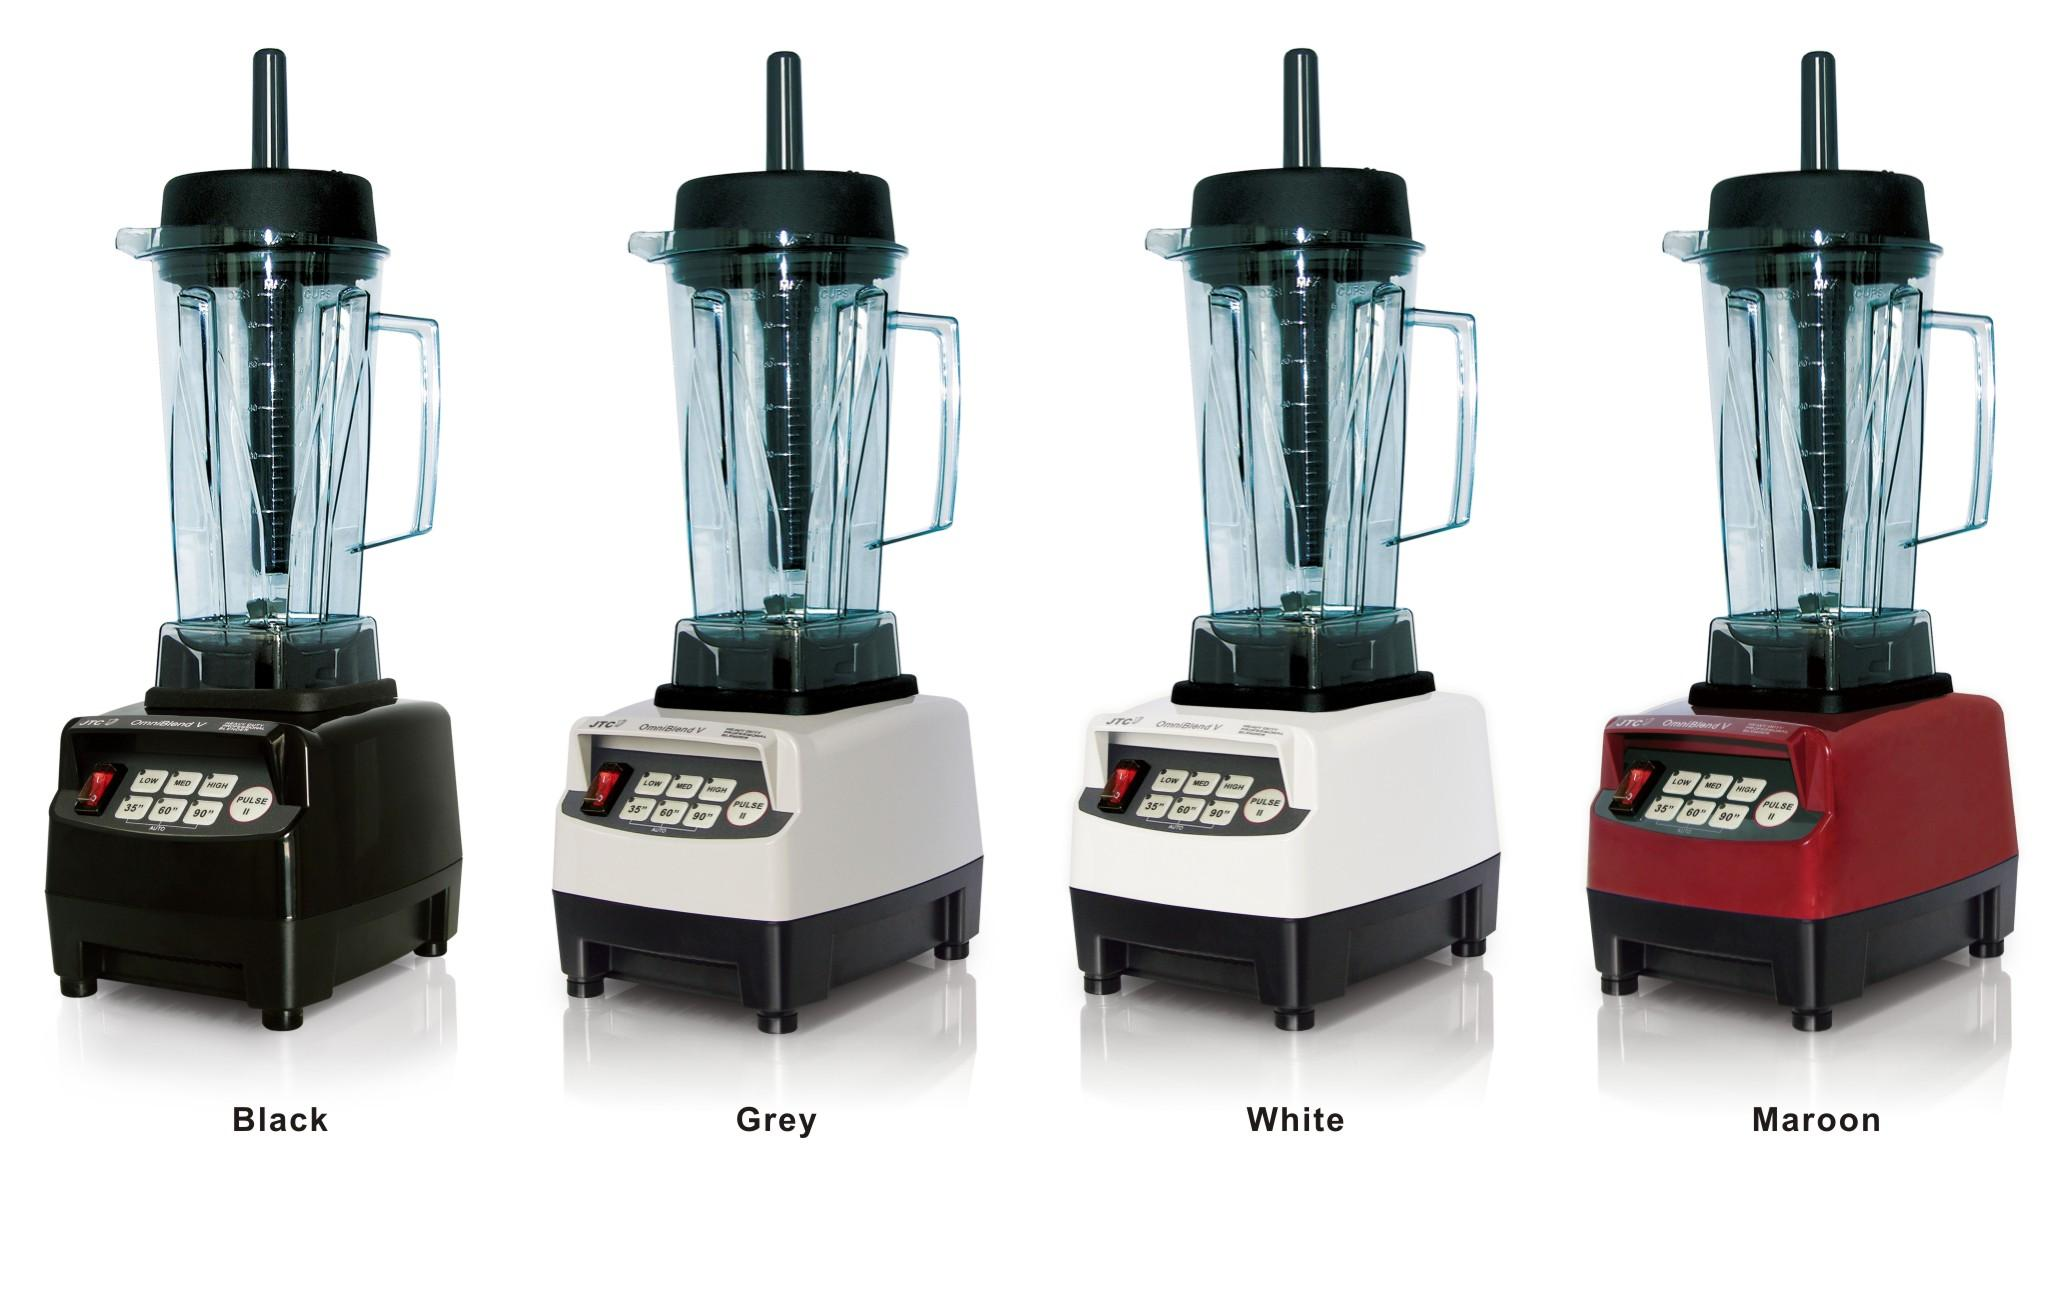 JTC Heavy duty commercial blender with PC jar, Model:TM-800, Black, FREE SHIPPING, 100% GUARANTEED NO. 1 QUALITY IN THE WORLD. jtc heavy duty commercial blender with pc jar model tm 800 black free shipping 100